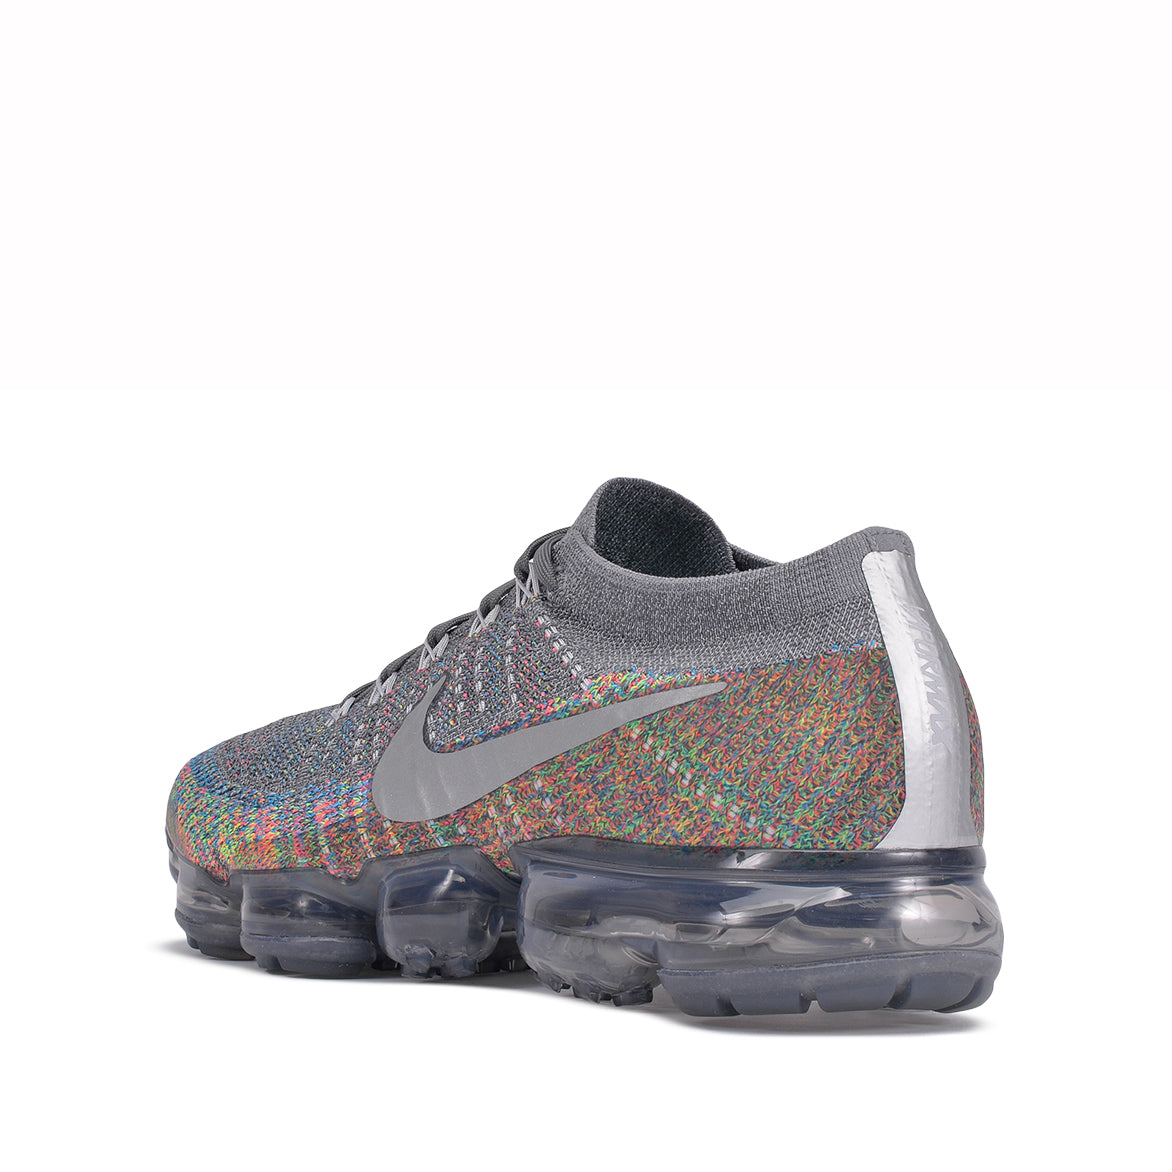 AIR VAPORMAX FLYKNIT - DARK GREY / REFLECT SILVER